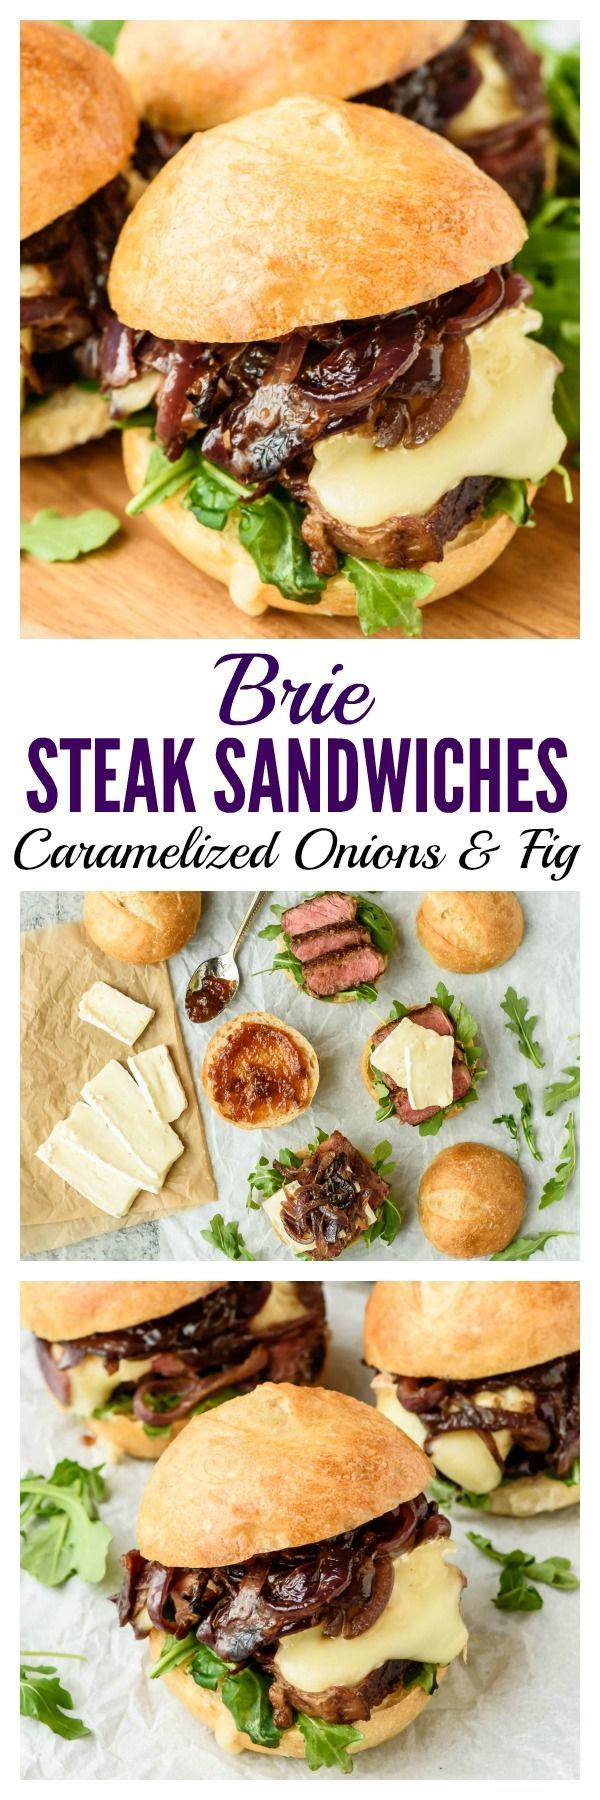 Lean mini steak sandwiches with creamy Brie cheese, caramelized onions, and fig jam. A sweet, savory flavor combination that's out of this world! Easy recipe to make in bulk for a party or for two for a special dinner.